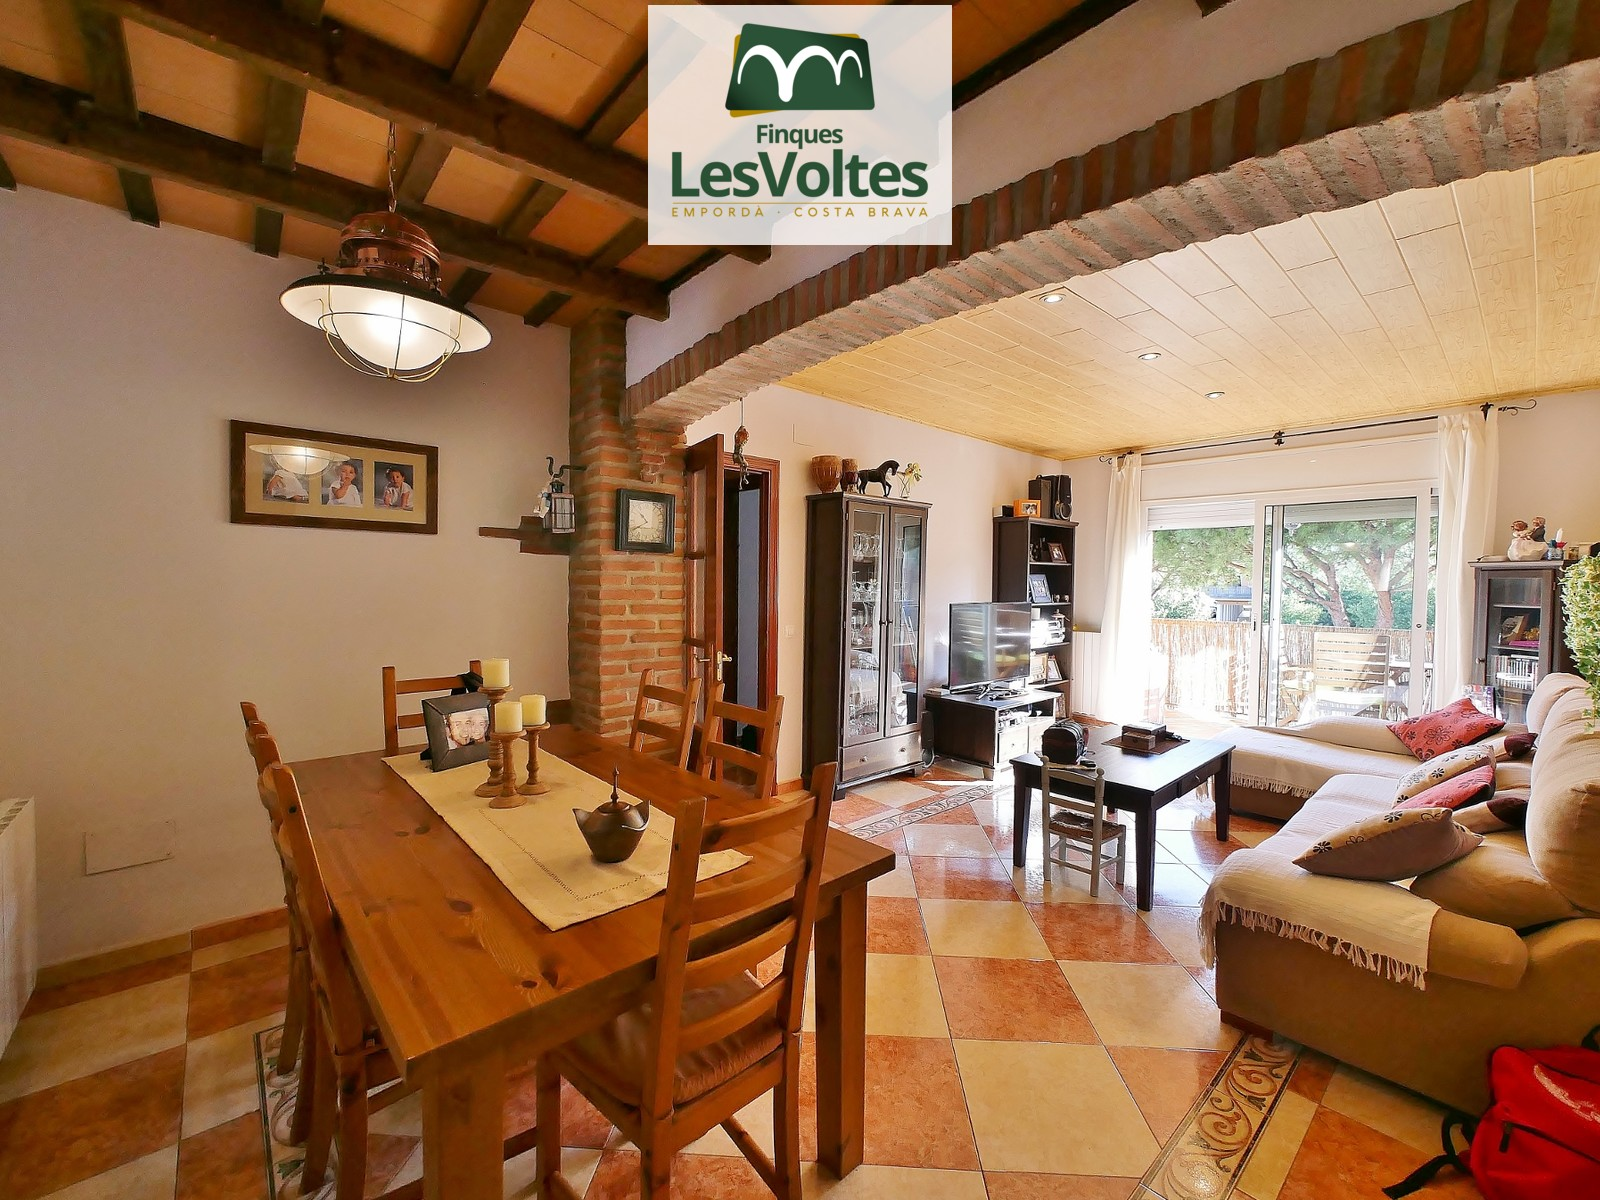 MAGNIFICENT RUSTIC STYLE 98M2 CORNER FLAT WITH PÀRQUING AND STORAGE ROOM FOR SALE IN PALAFRUGELL. GOOD SITUATION.